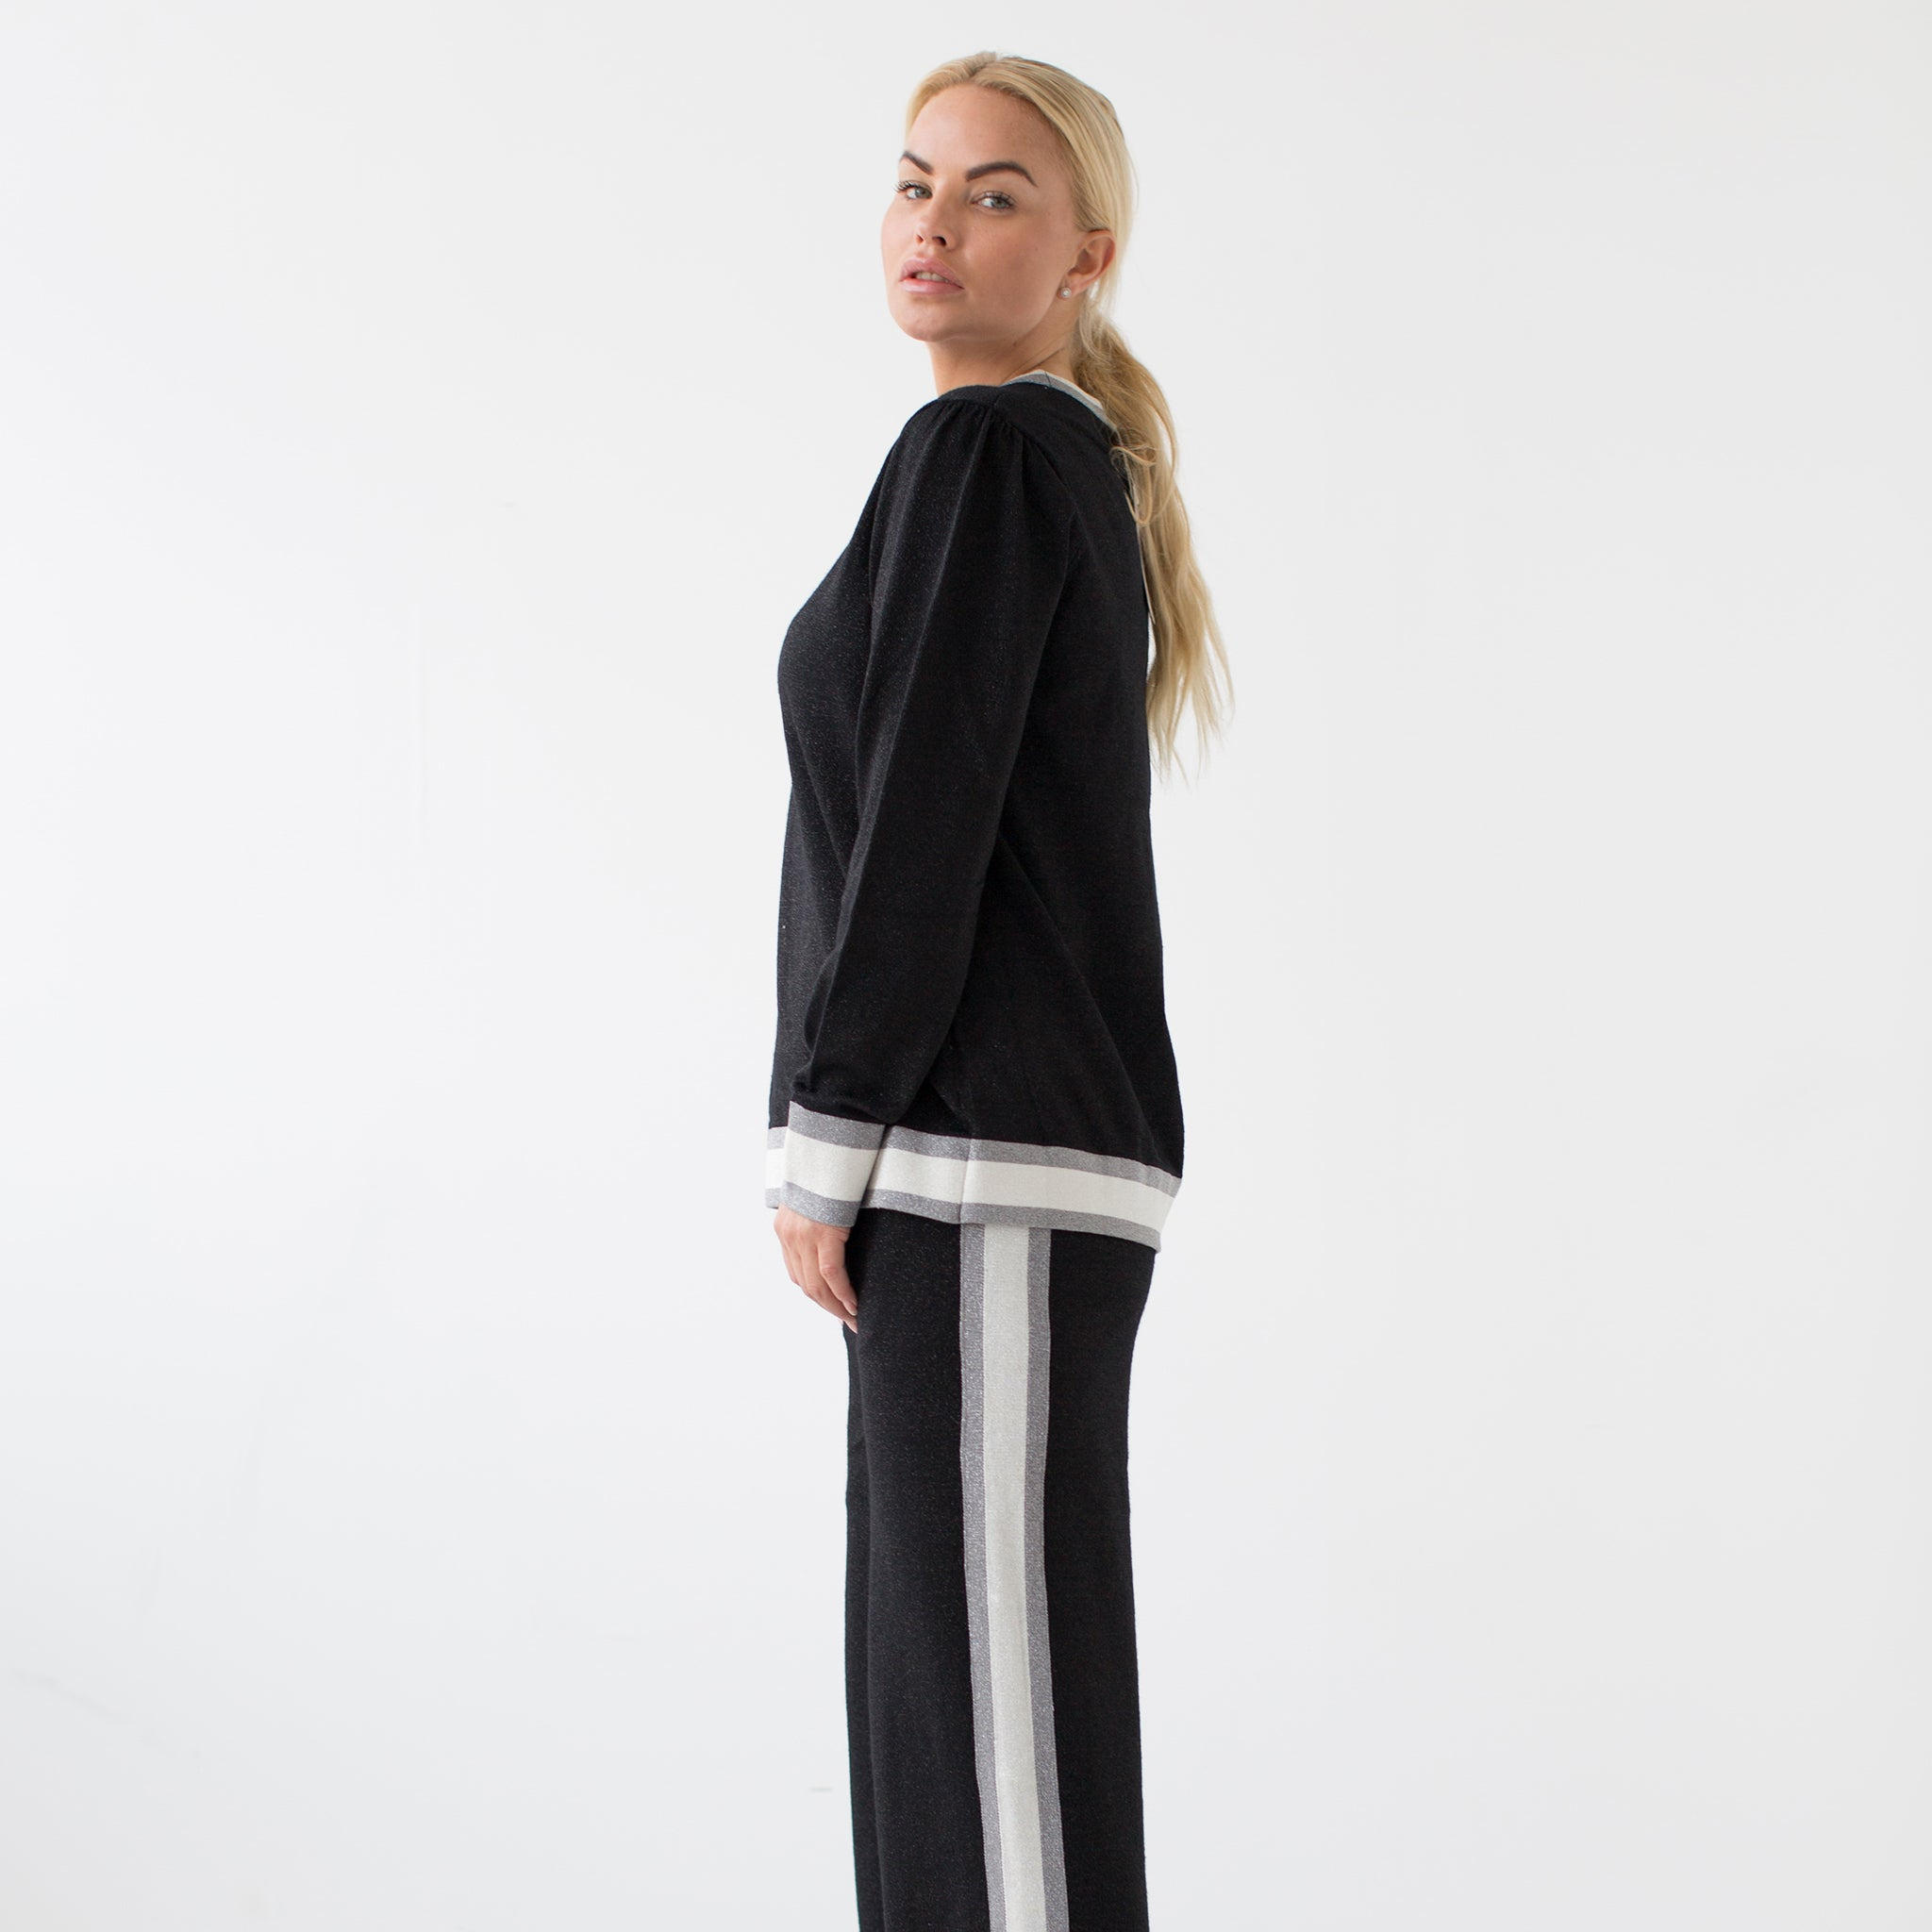 Melli Pants Black